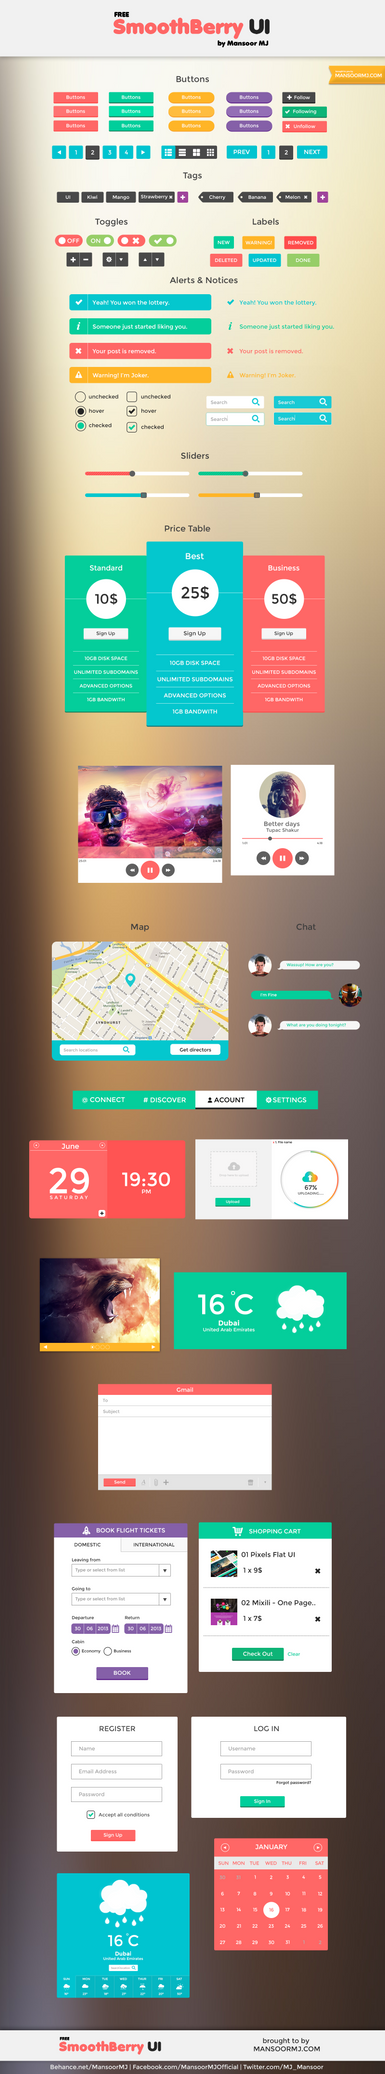 Smooth Berry UI by MansoorMj